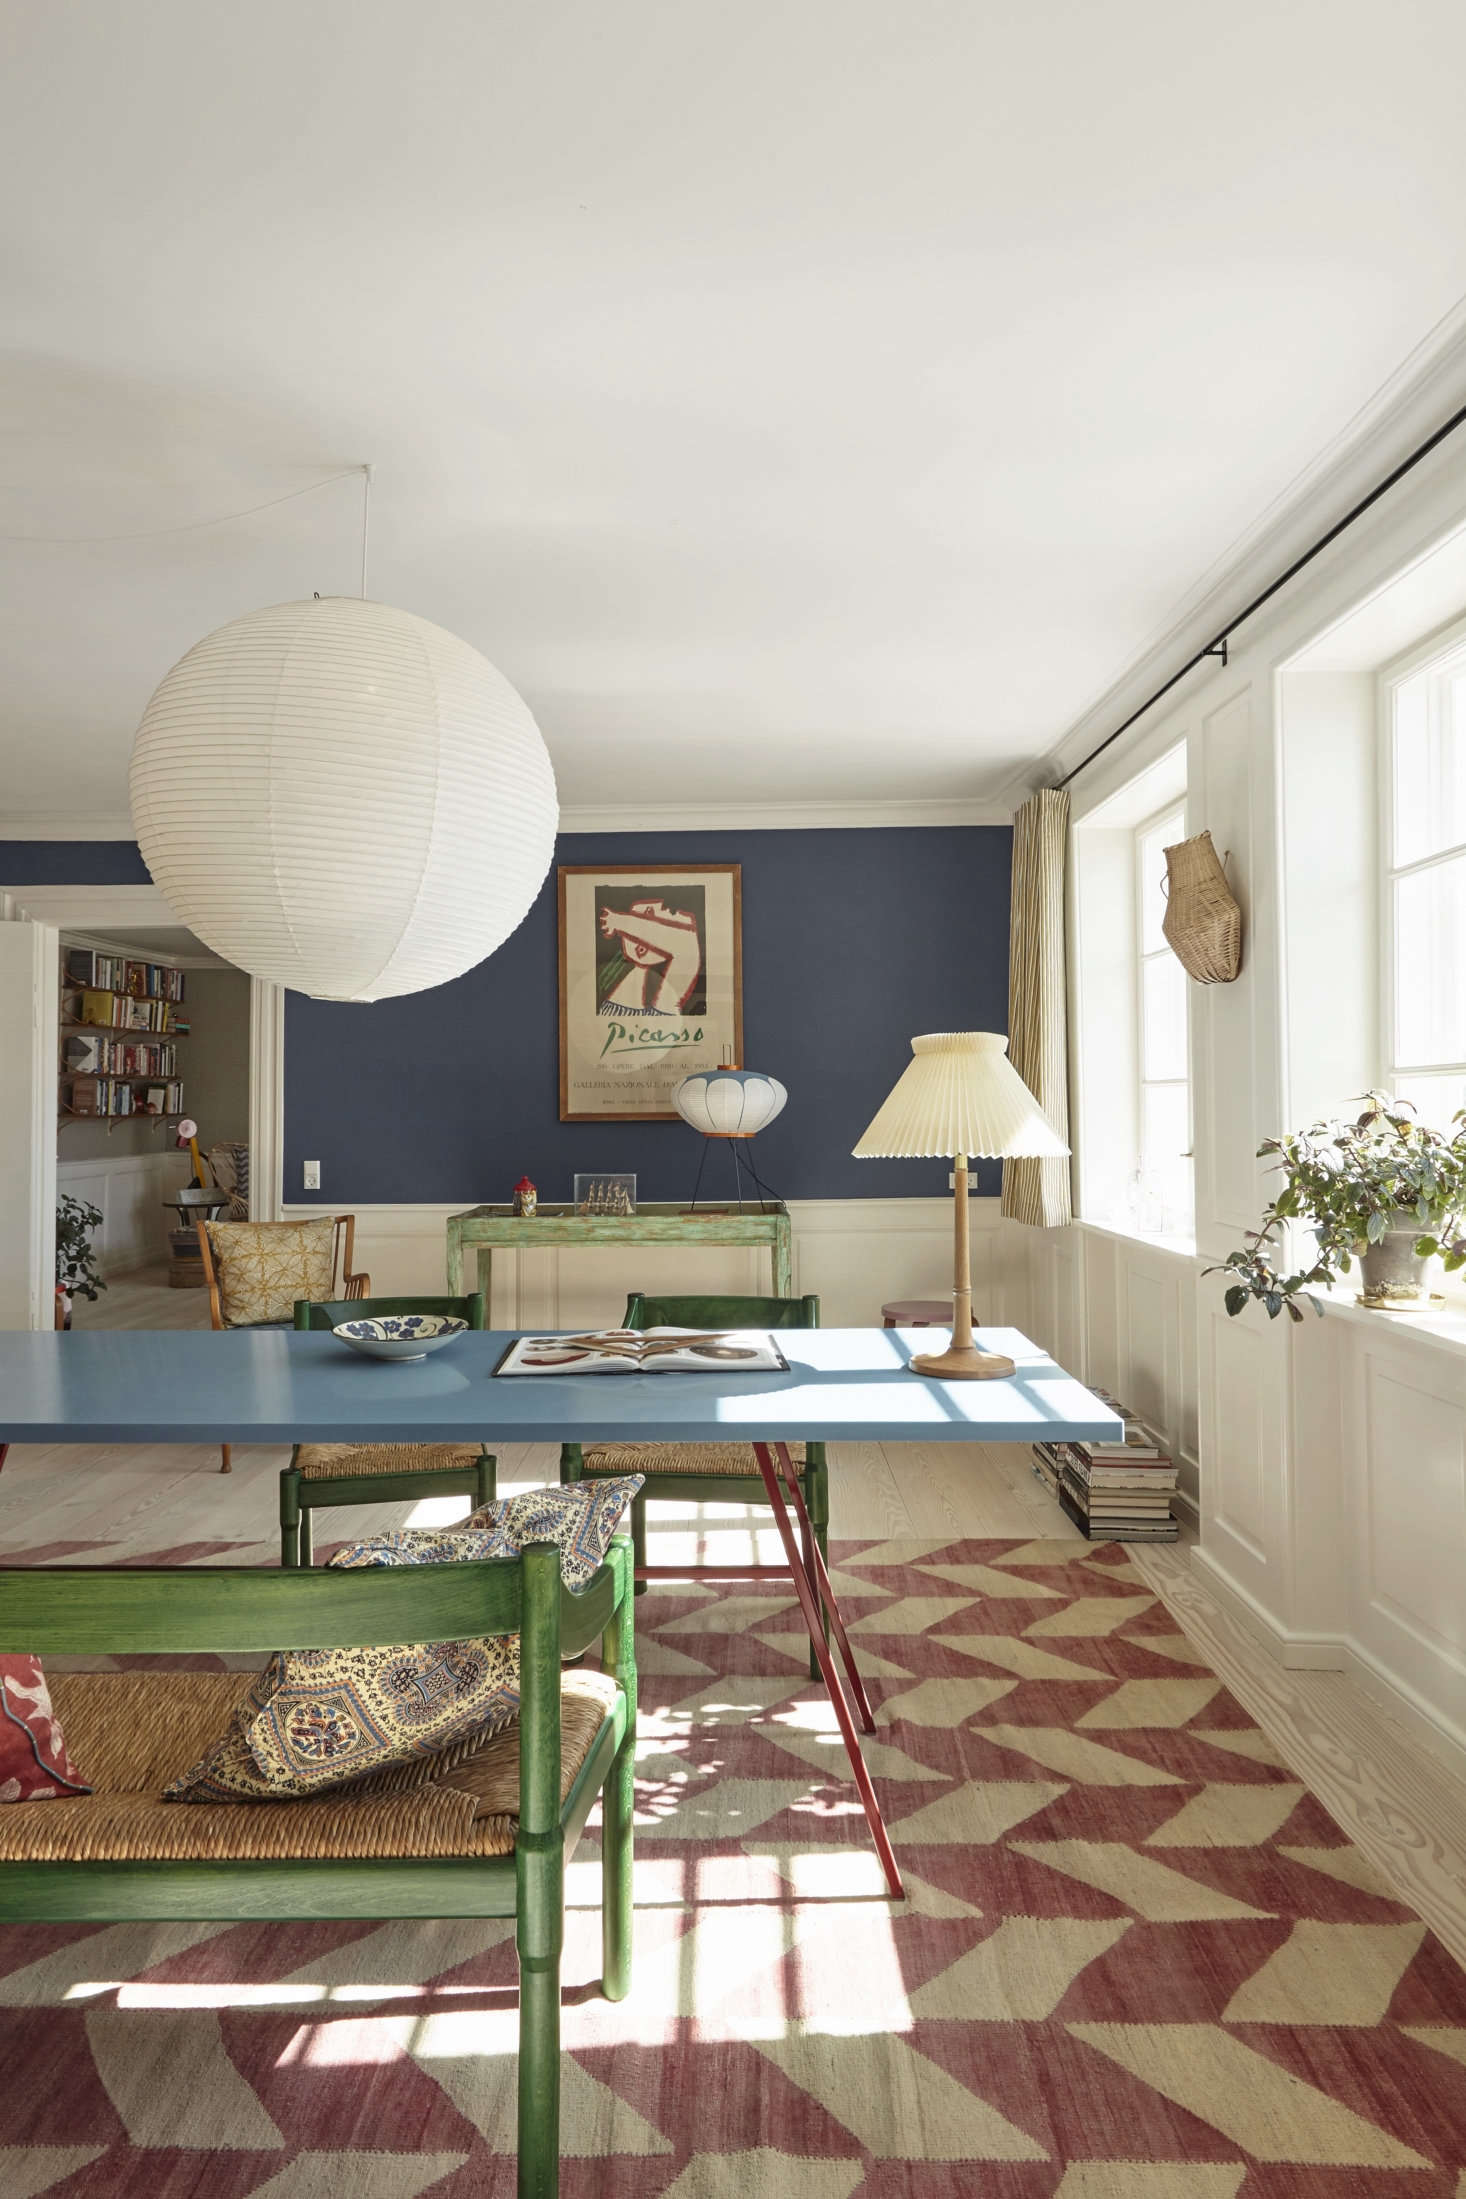 The walls are painted Farrow & Ball Drawing Room Blue. The dining chairs are a Vico Magistretti design from 59.